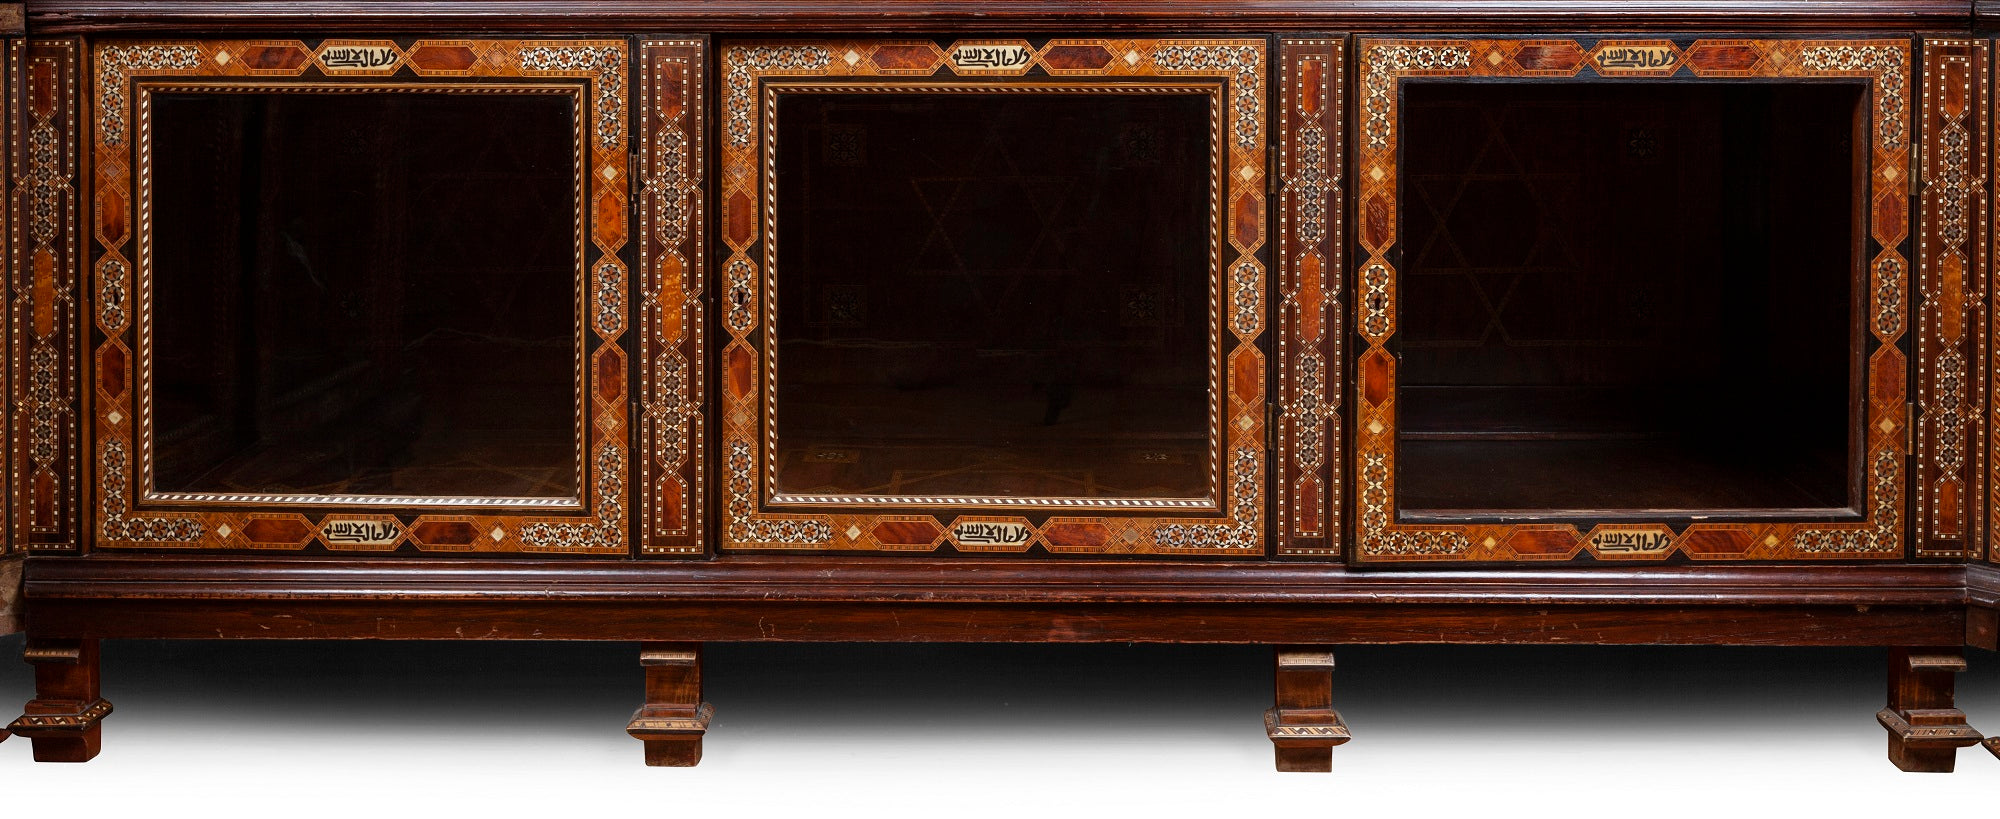 An Antique Moroccan Parquetry, Bone Inlaid and Glazed Display Cabinet